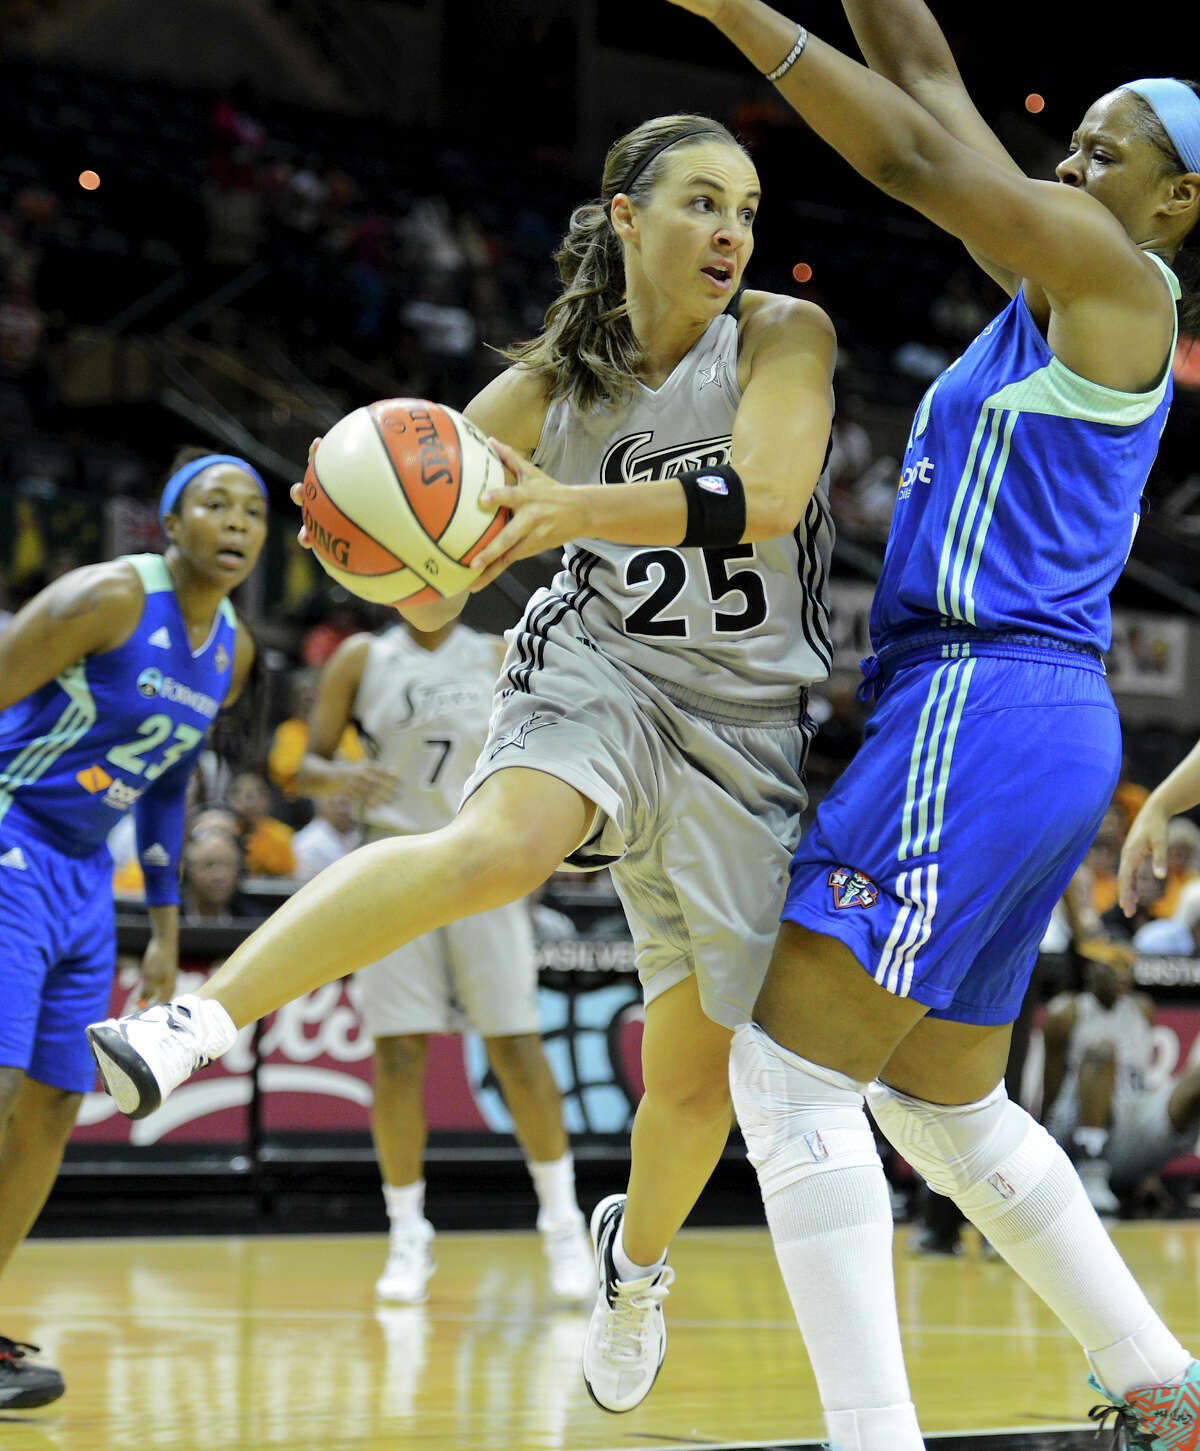 Guard Becky Hammon looks to pass around the New York Liberty's Kia Vaughn during Tuesday night's 77-66 Silver Stars victory at the AT&T Center. A 22-9 fourth quarter fueled the win.